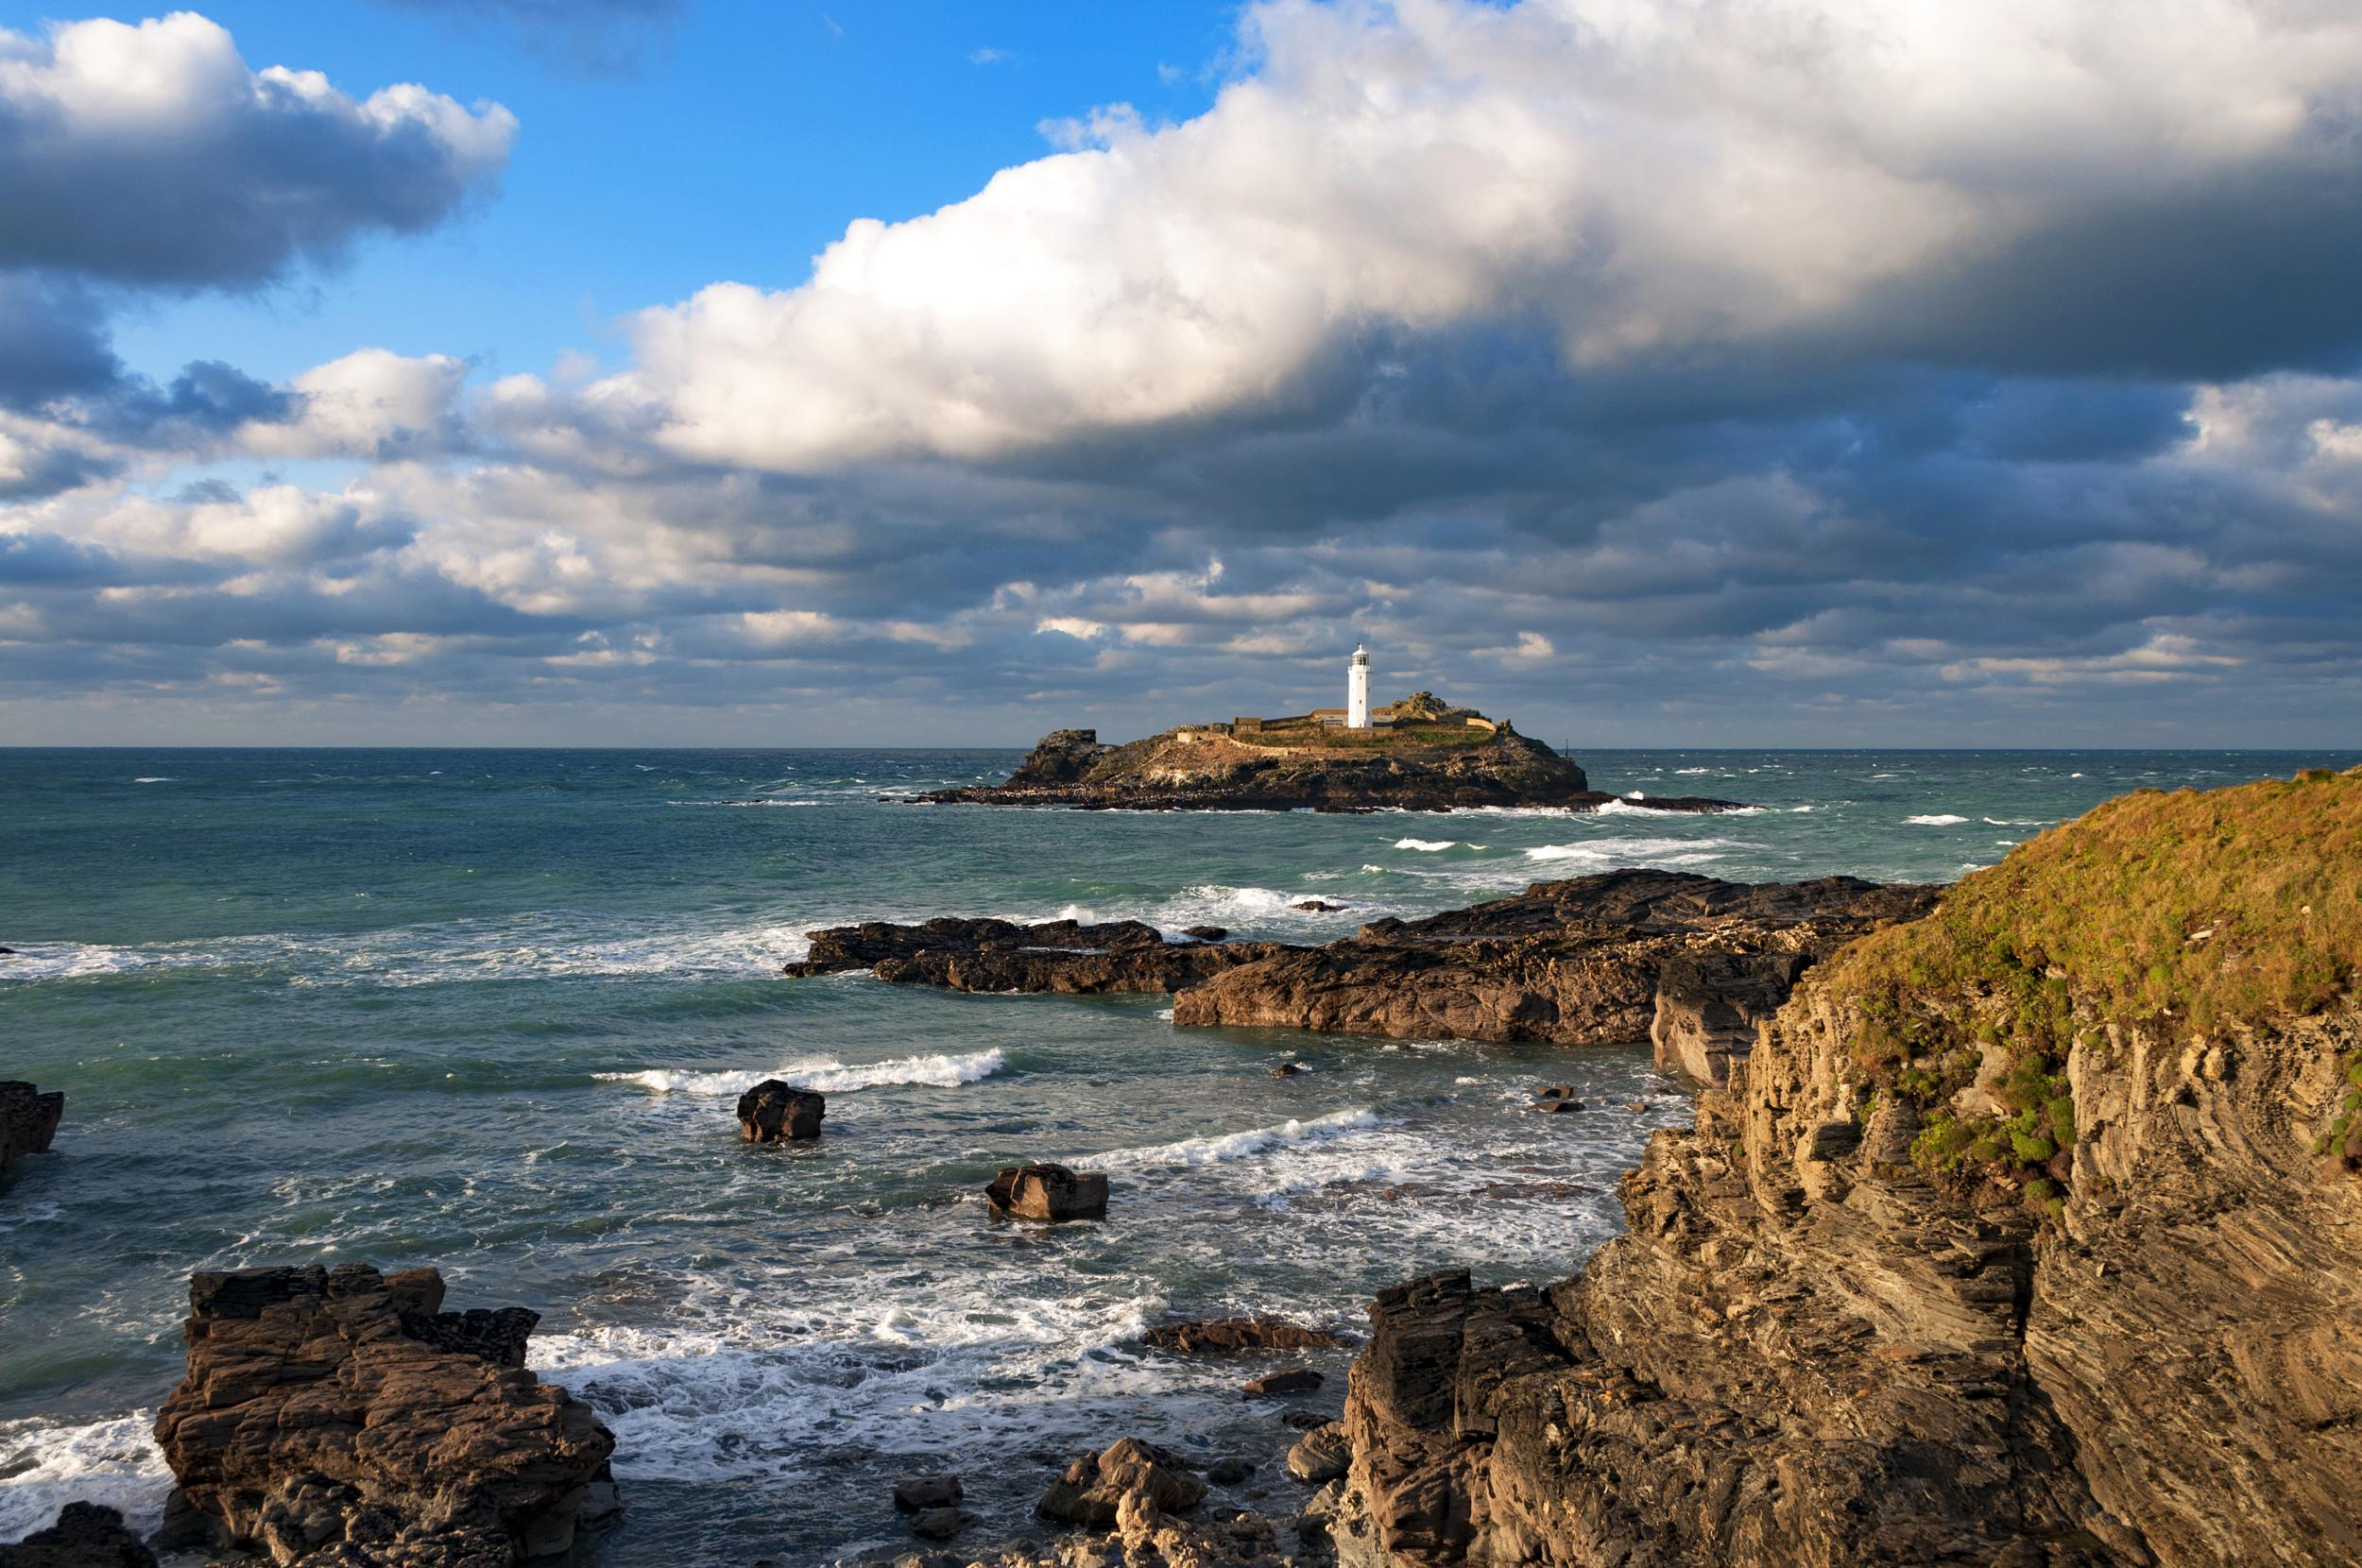 Back to the lighthouse: In search of Virginia Woolf's lost Eden in Cornwall